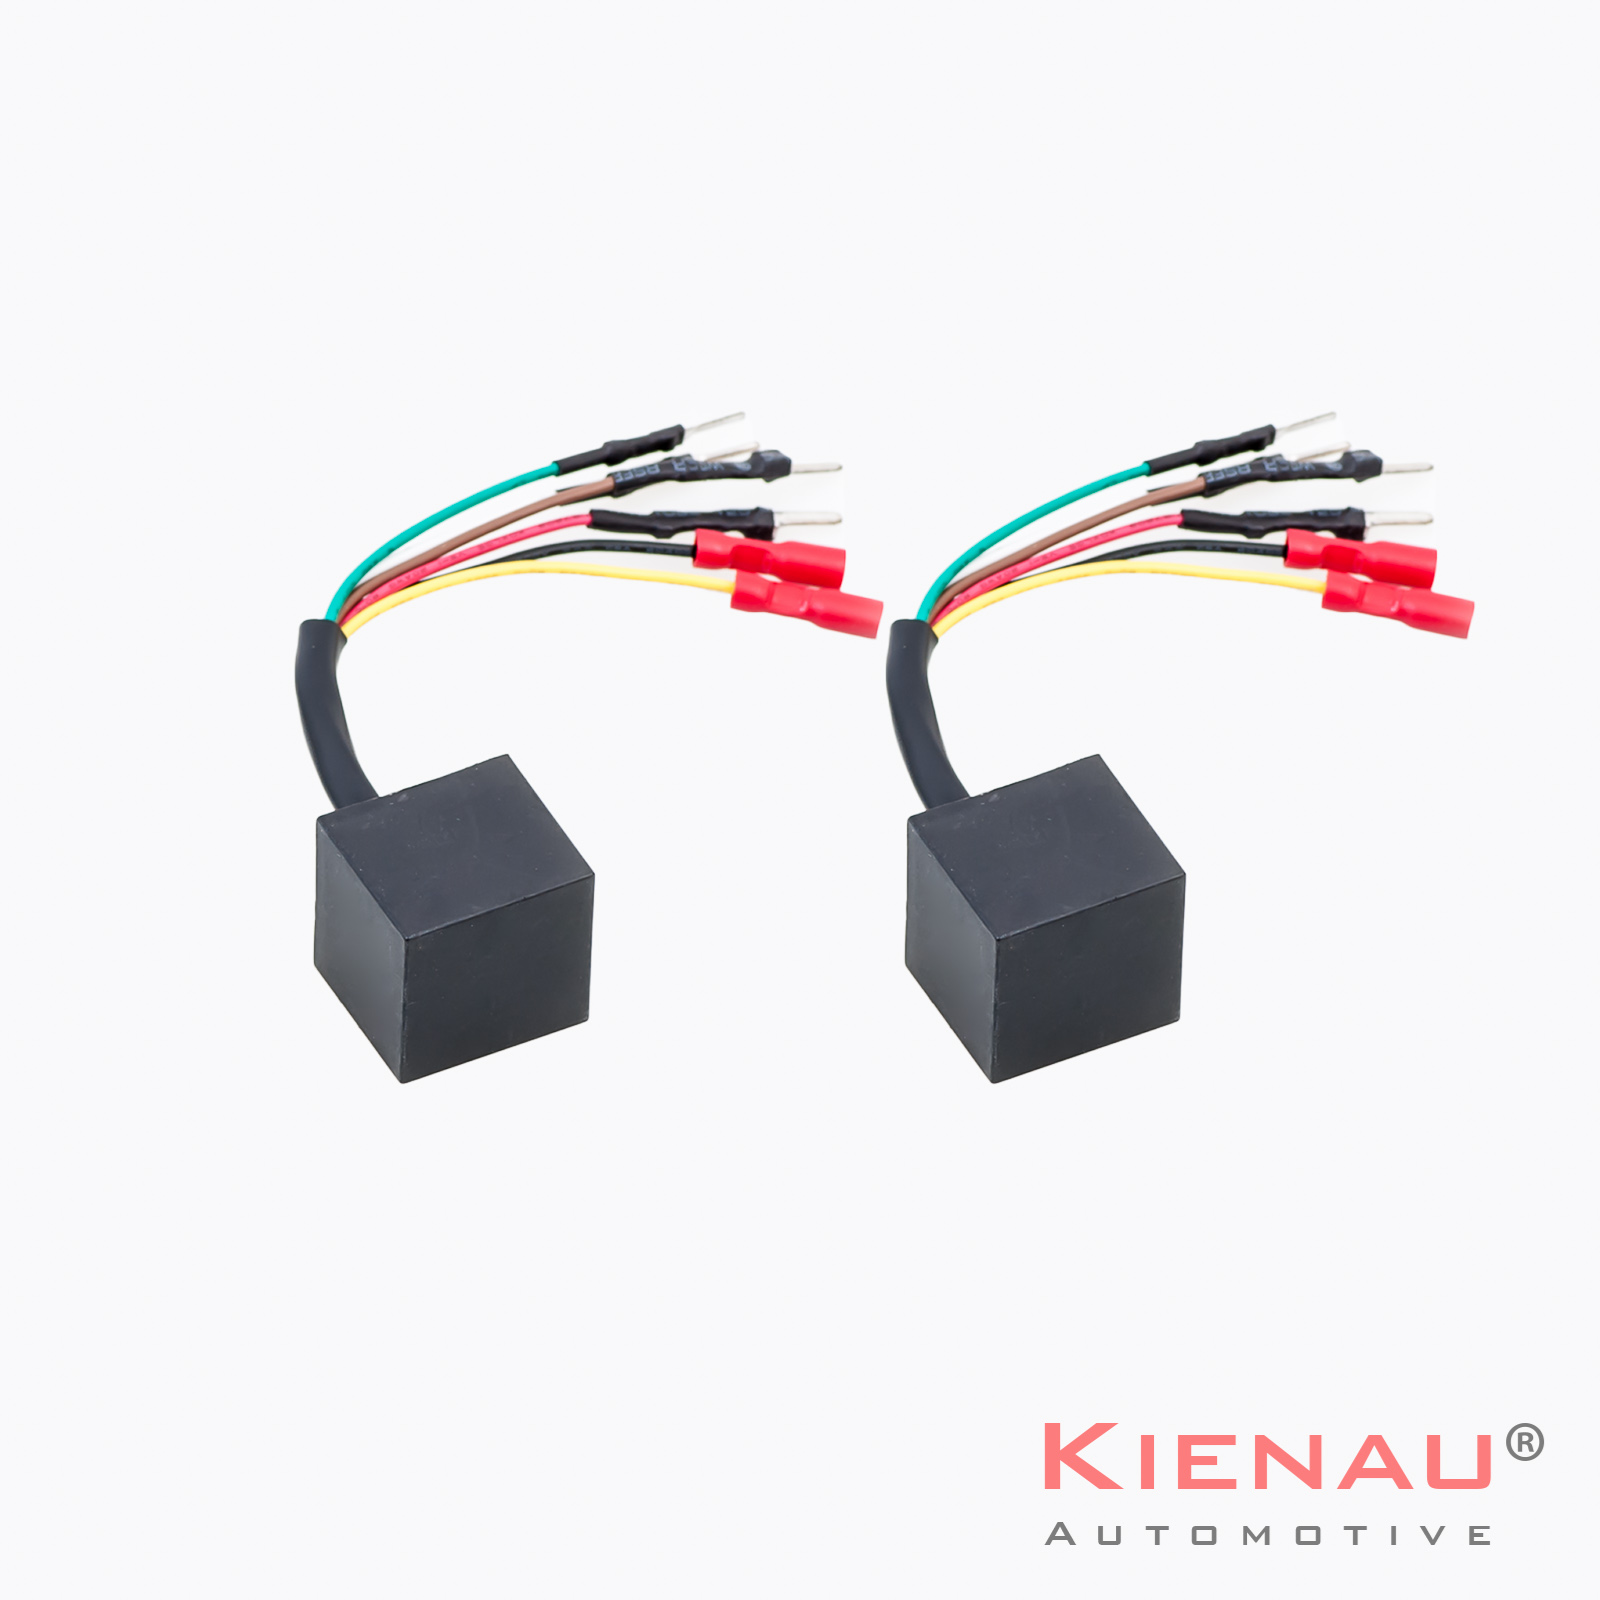 2 x renault megane scenic temic replacement electric window motor module kit ebay. Black Bedroom Furniture Sets. Home Design Ideas